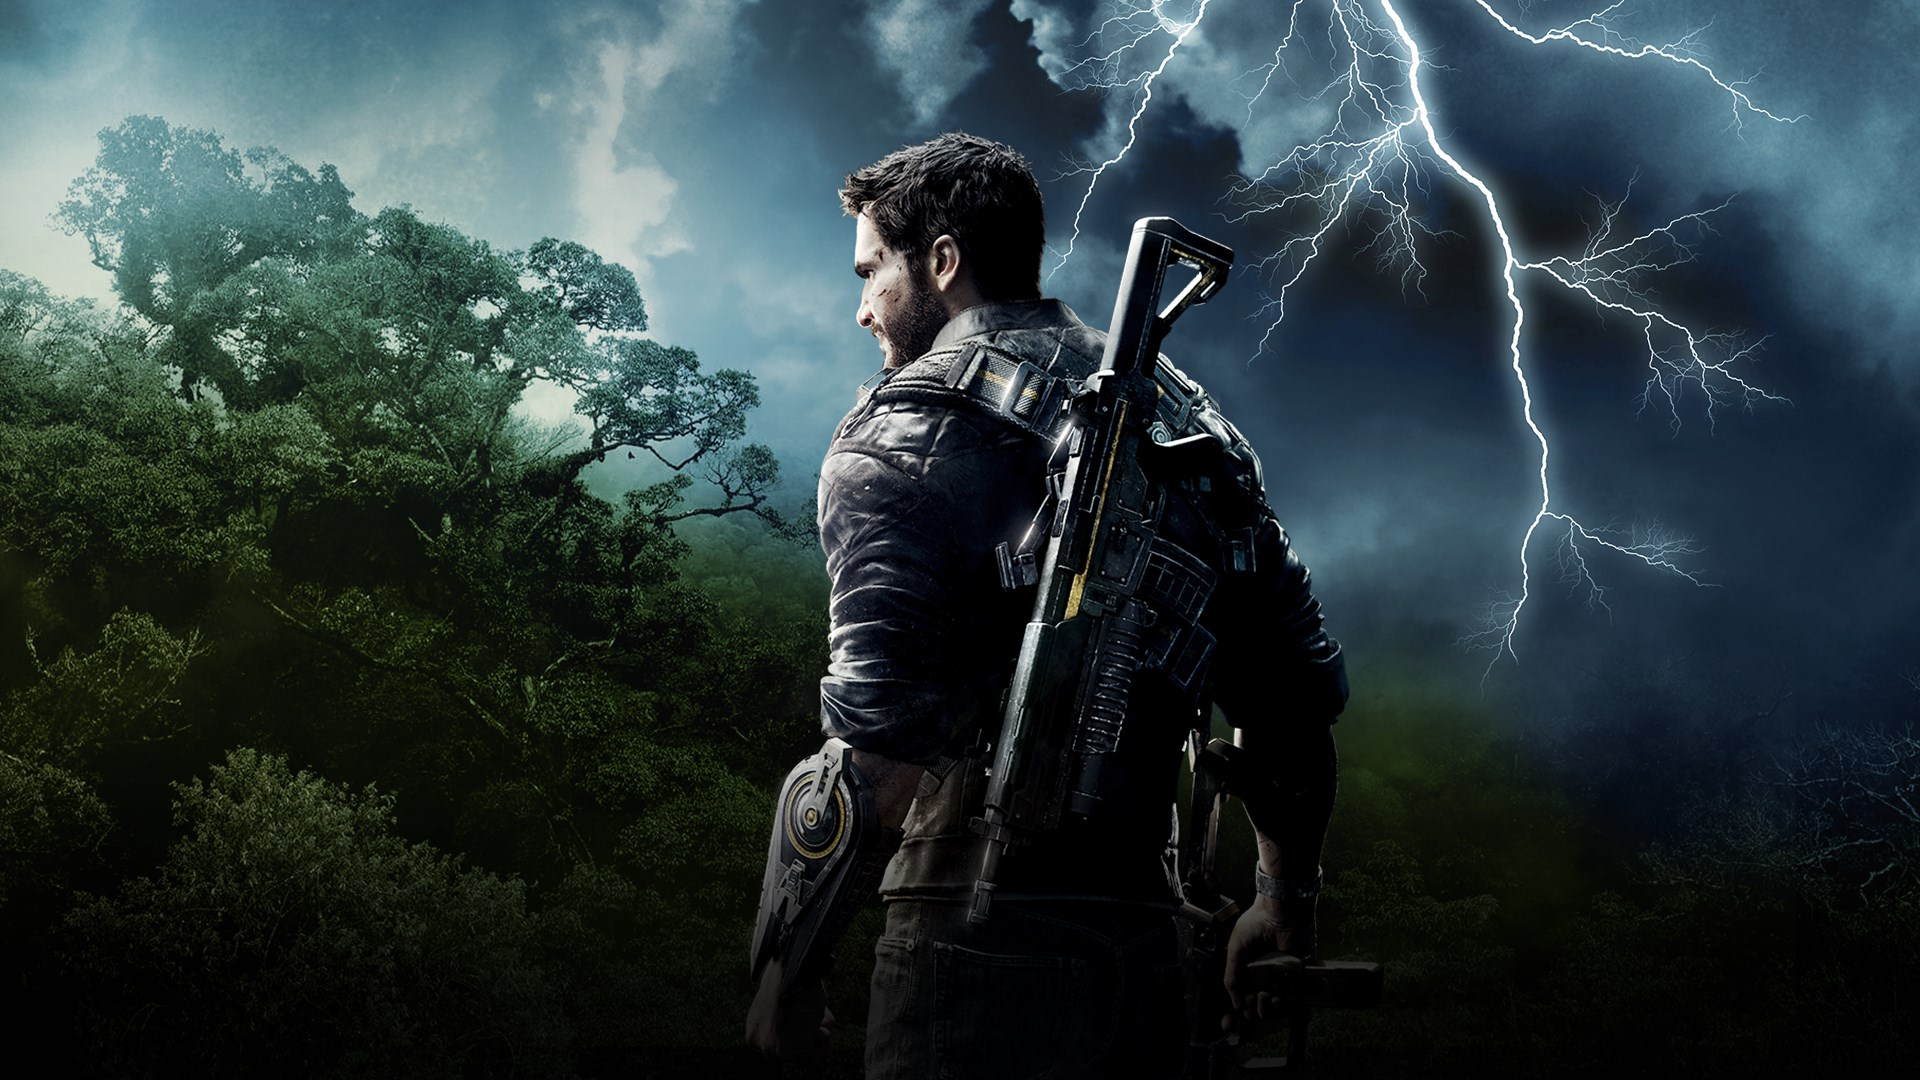 Just Cause 4 (Oyun İncelemesi) | Just Cause 4